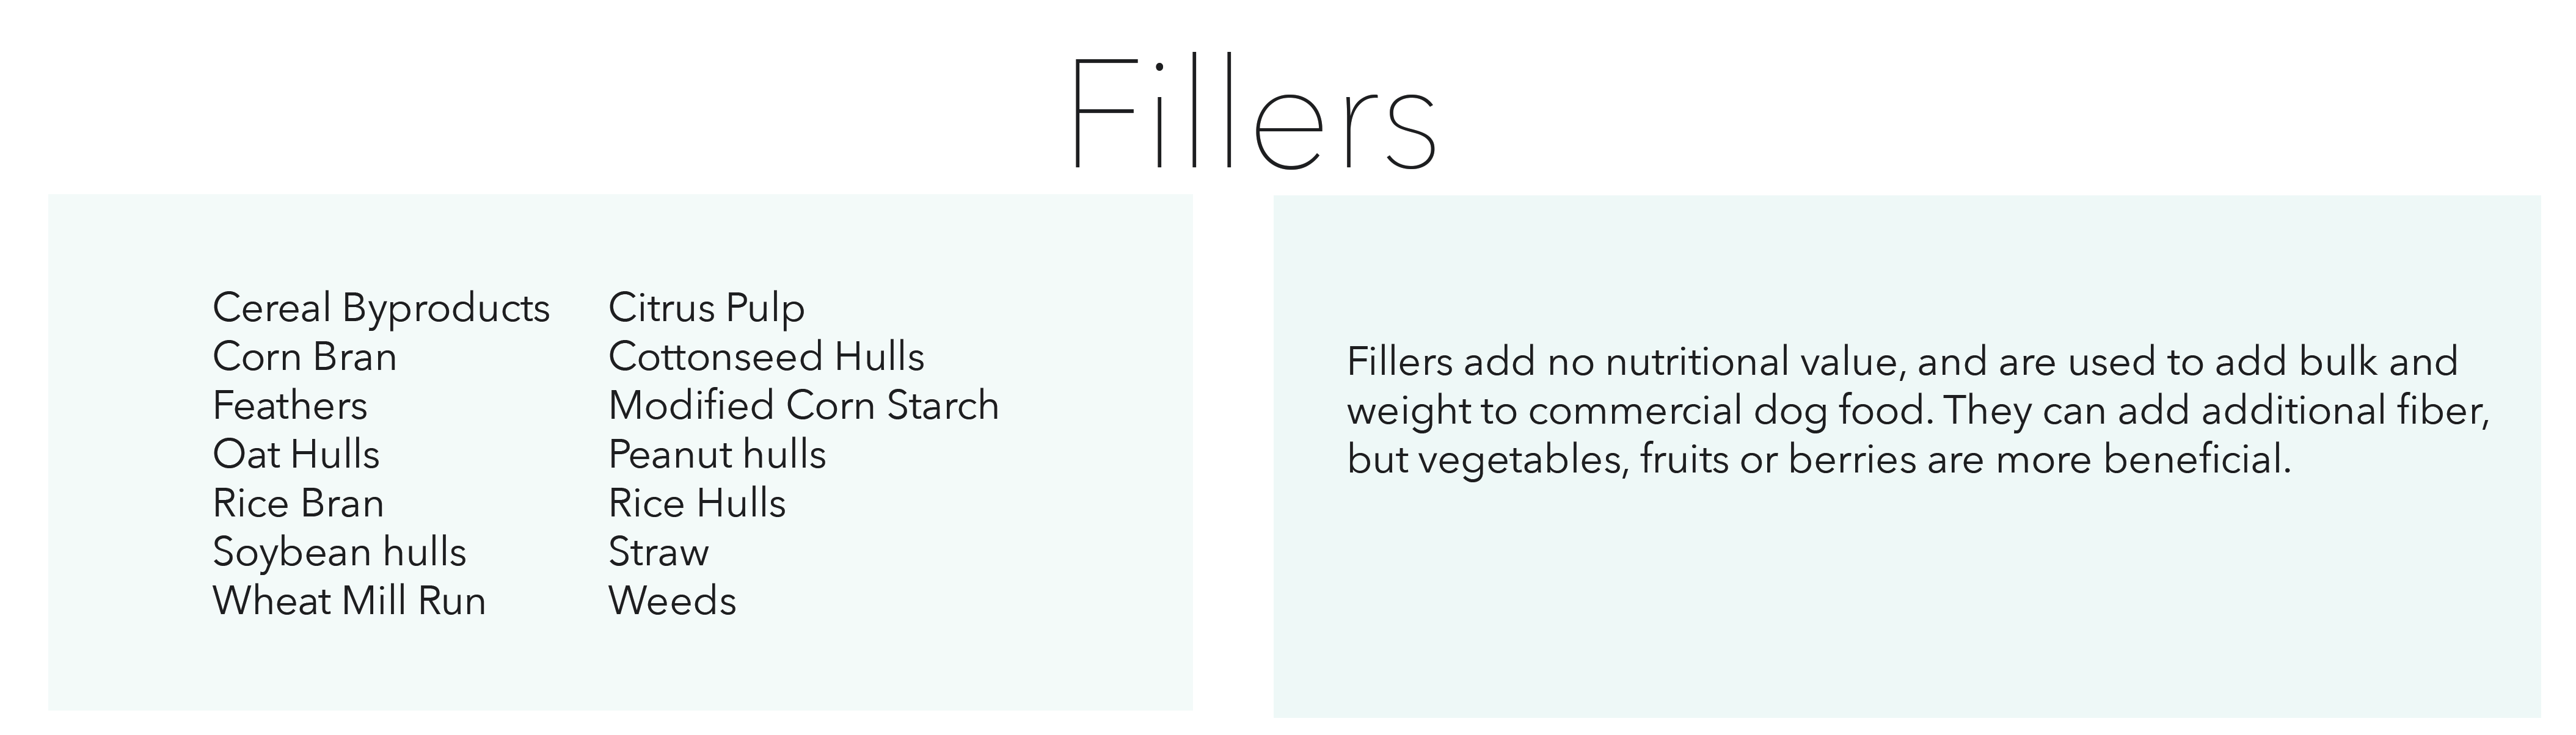 fillers in dog food